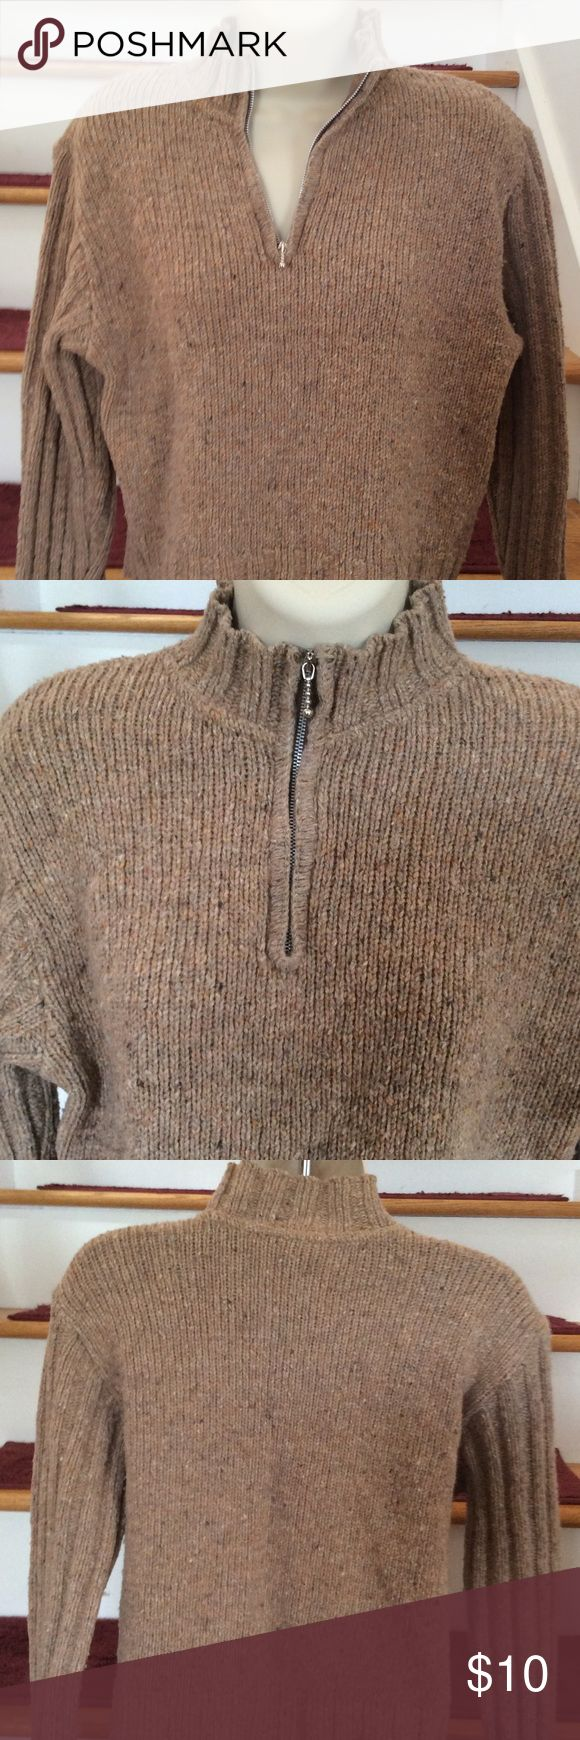 Cute and Warm Comfy Women's sweater, Size S Super cute preloved sweater with zip at neck. 80% Wool/20% Acrylic with natural variations in thread color/texture. Well made sweater in Italy that still has life to give, Size S Wit Boy Italy Sweaters